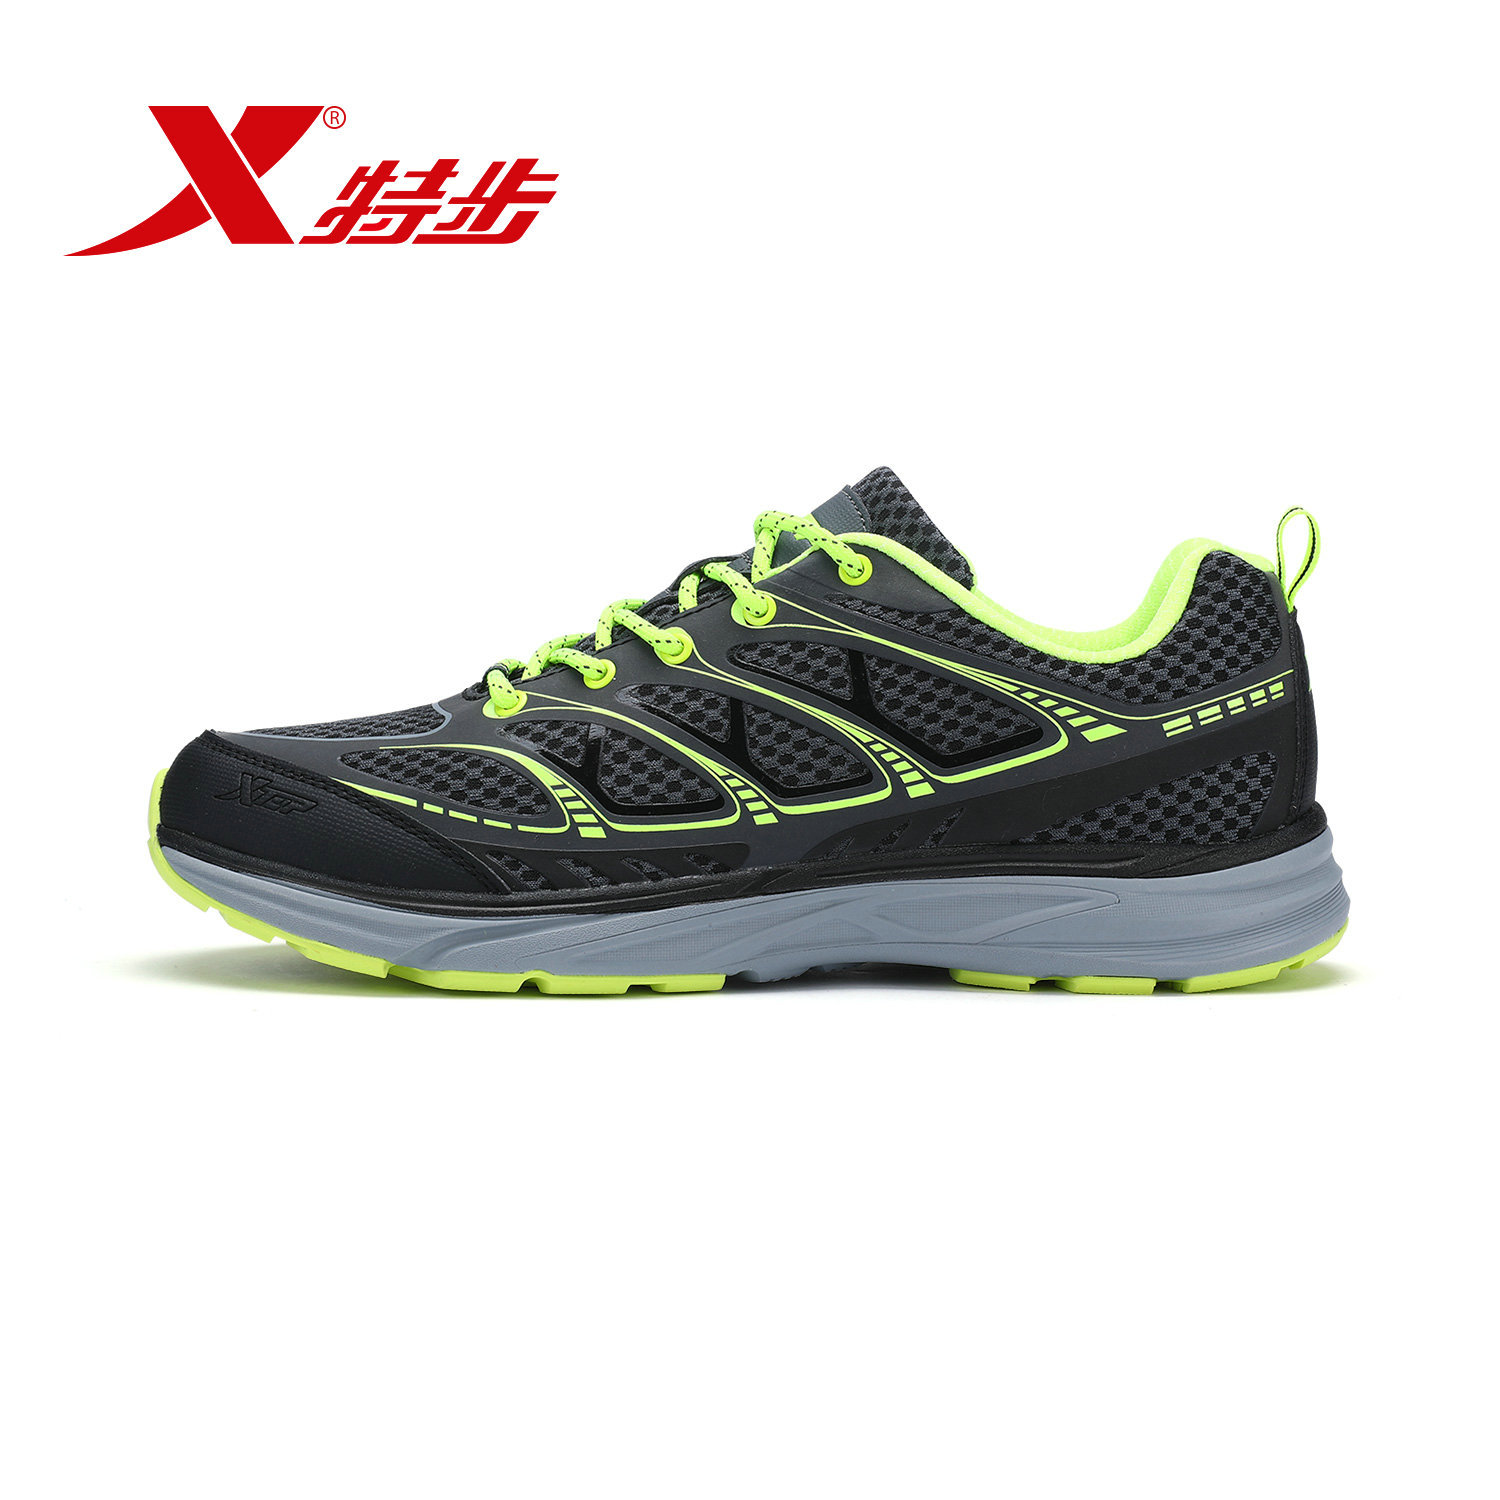 Special step men and women walking shoes summer new comfortable breathable mesh wear-resistant shock-absorbing hiking shoes casual outdoor shoes